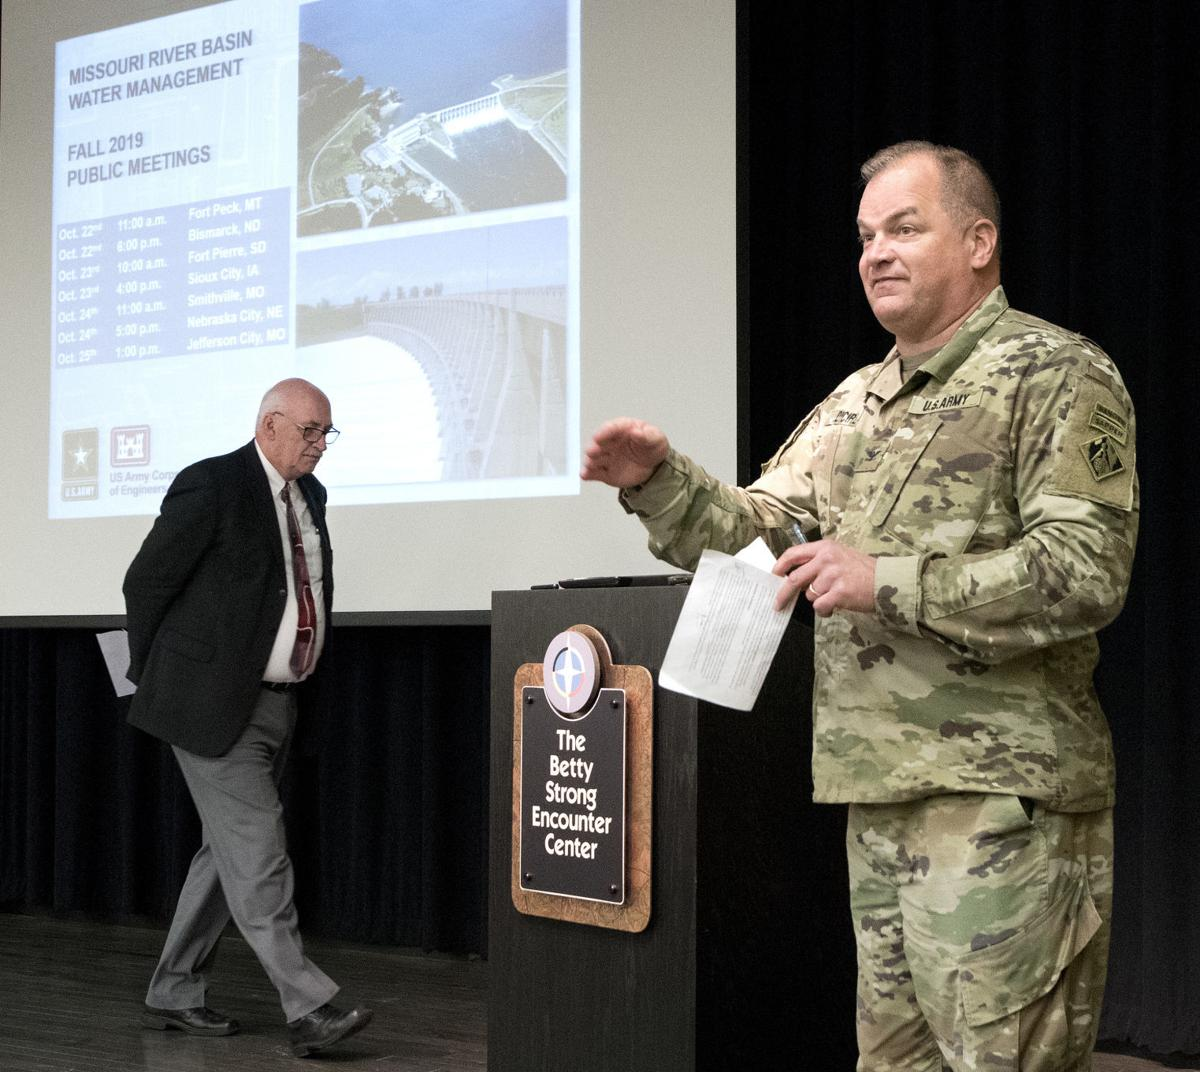 US Army Corps of Engineers Missouri River meeting